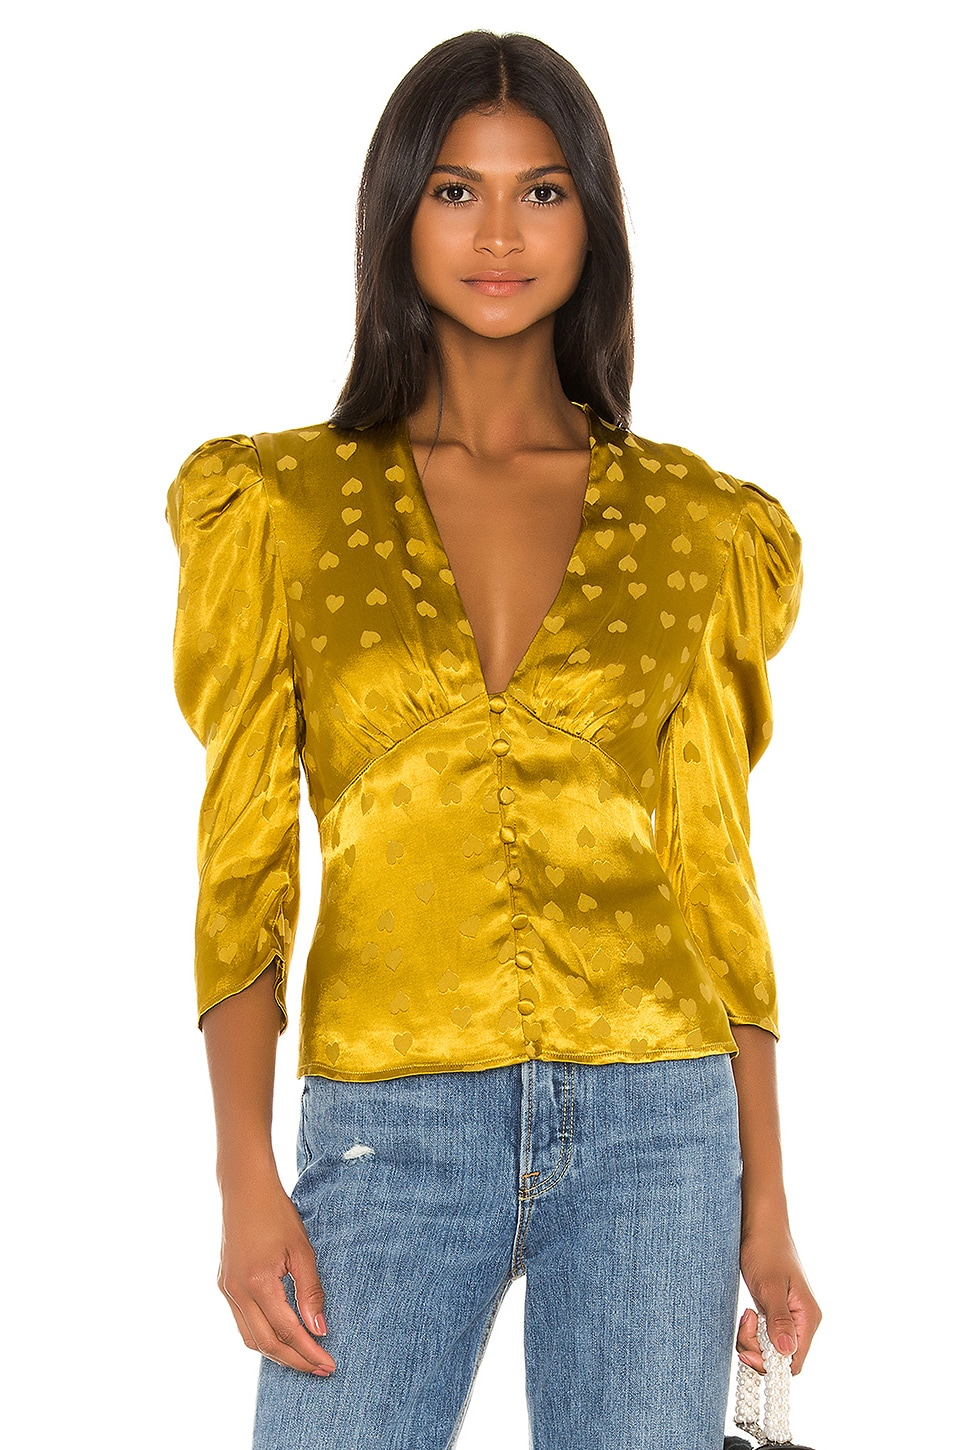 LPA Harlow Top in Golden Hearts